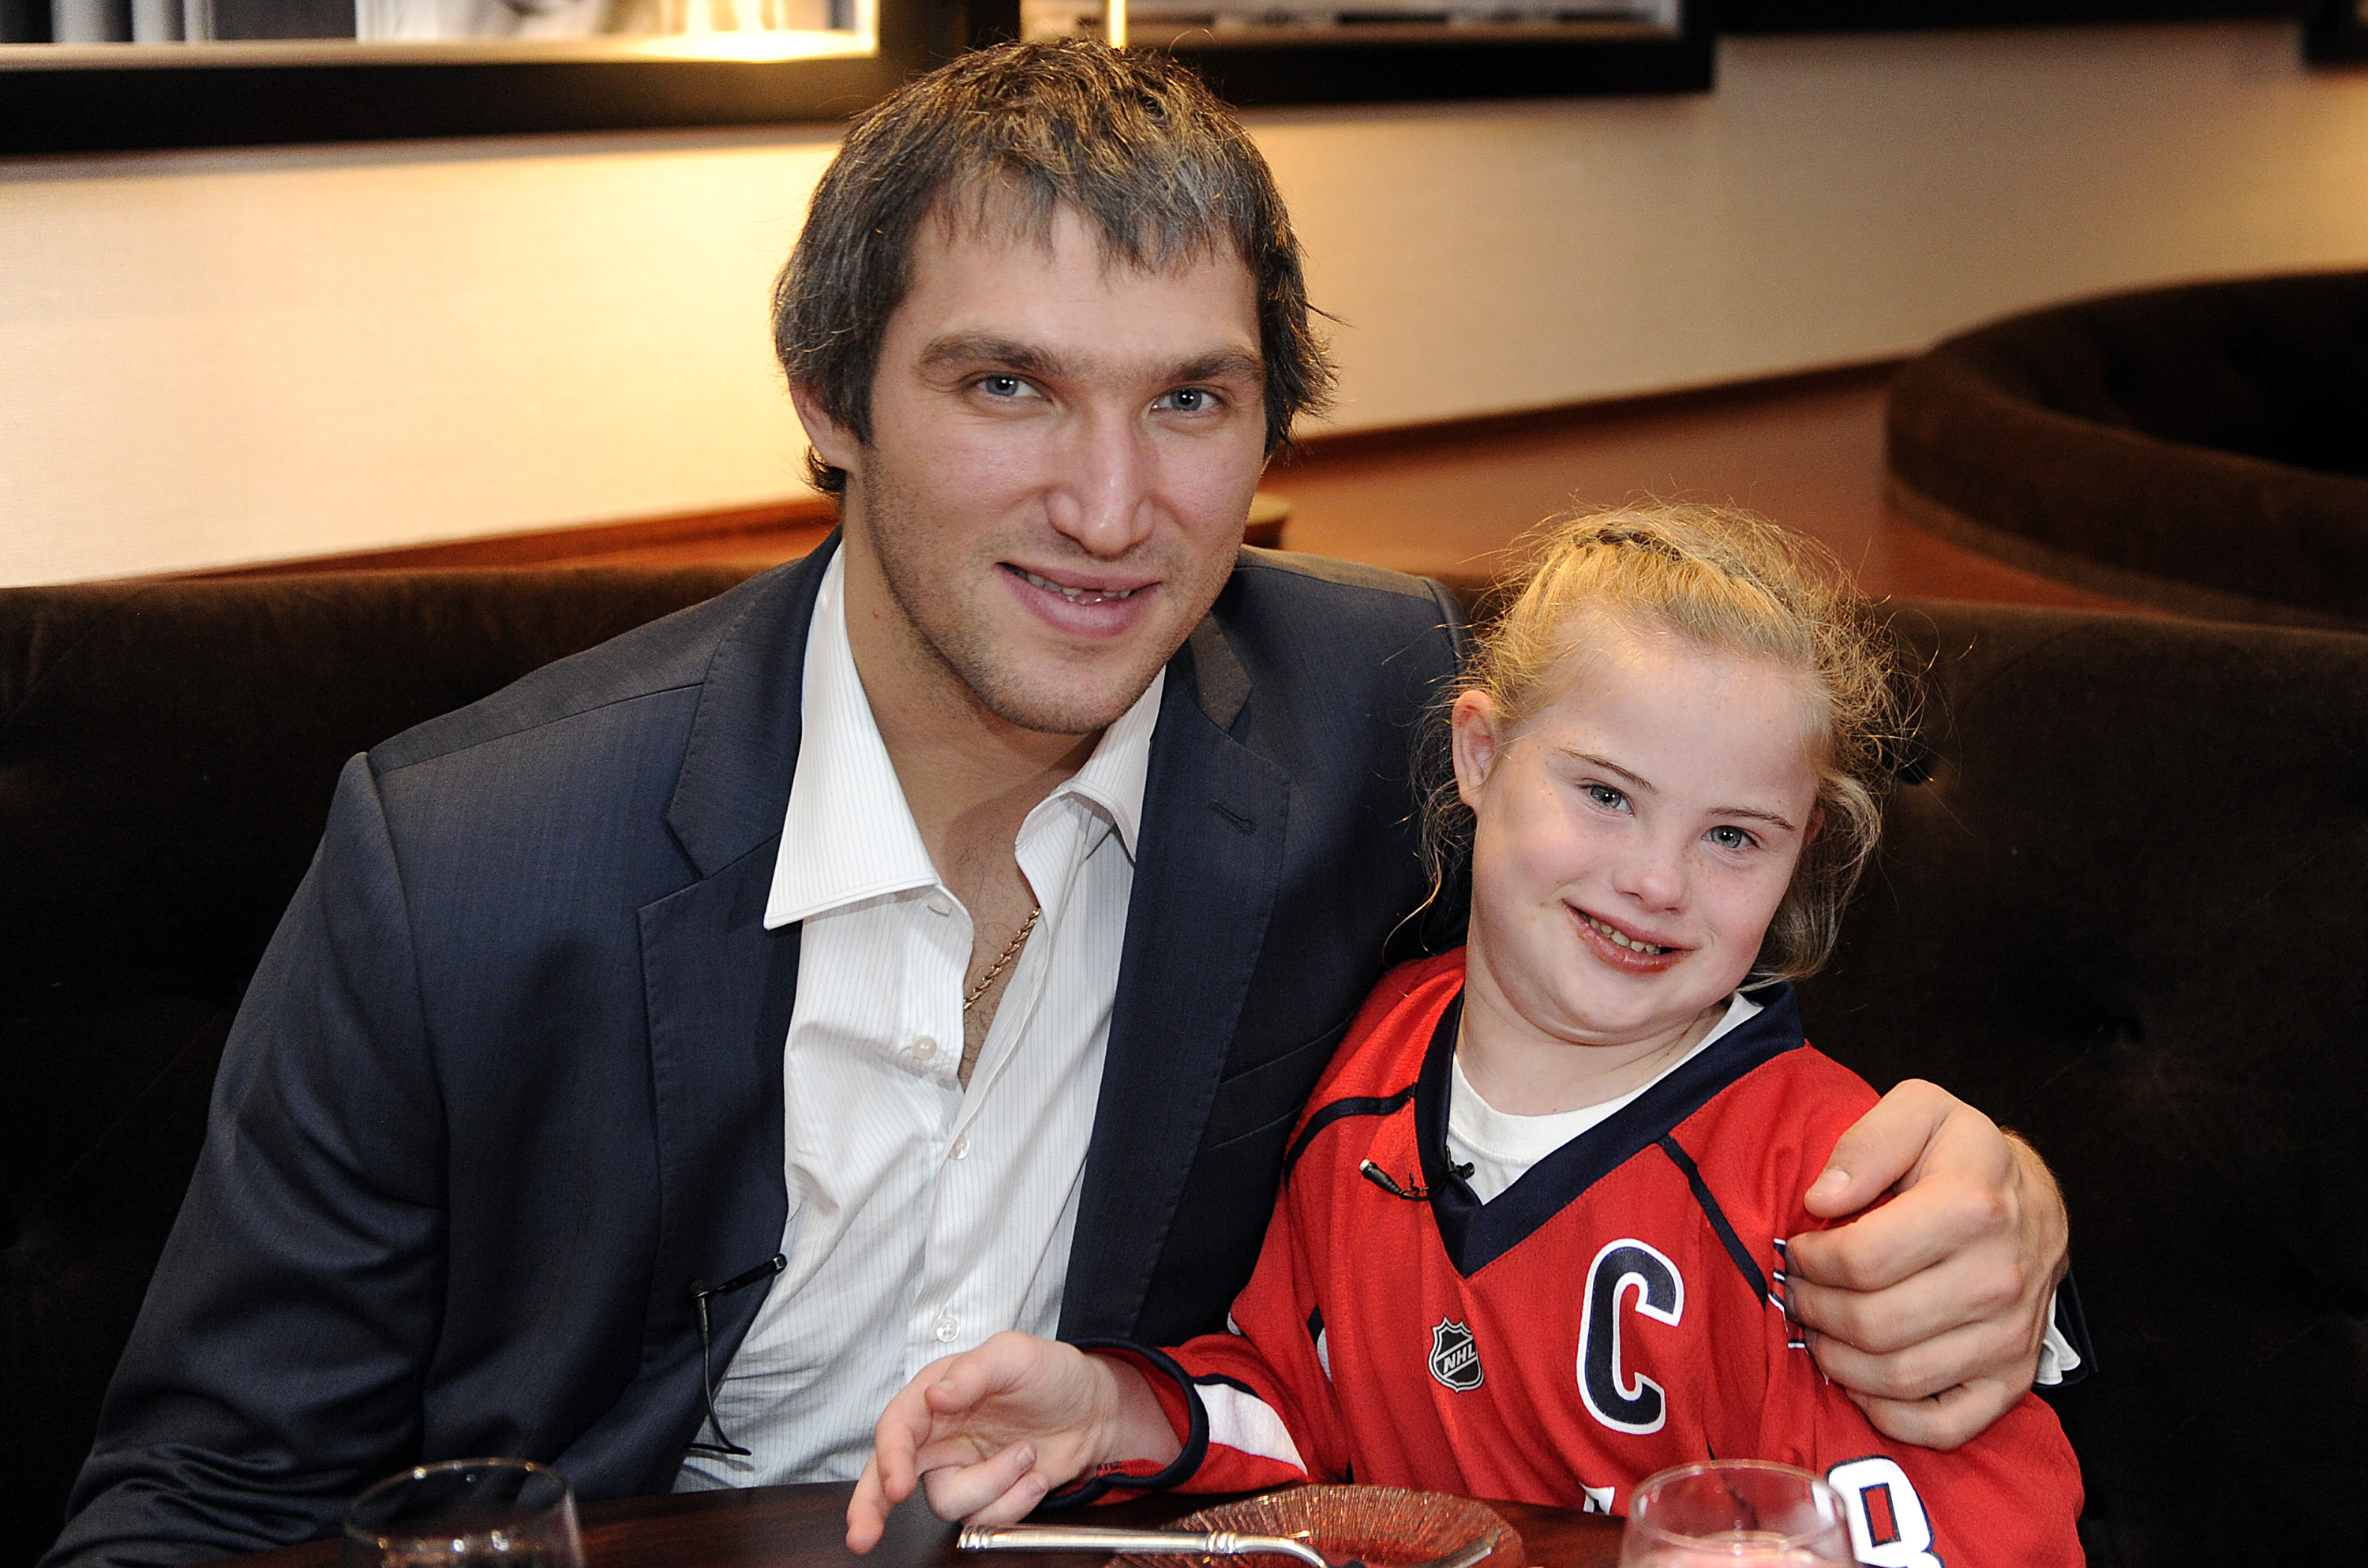 Alex Ovechkin surprises 10-year-old fan with date (Photos)